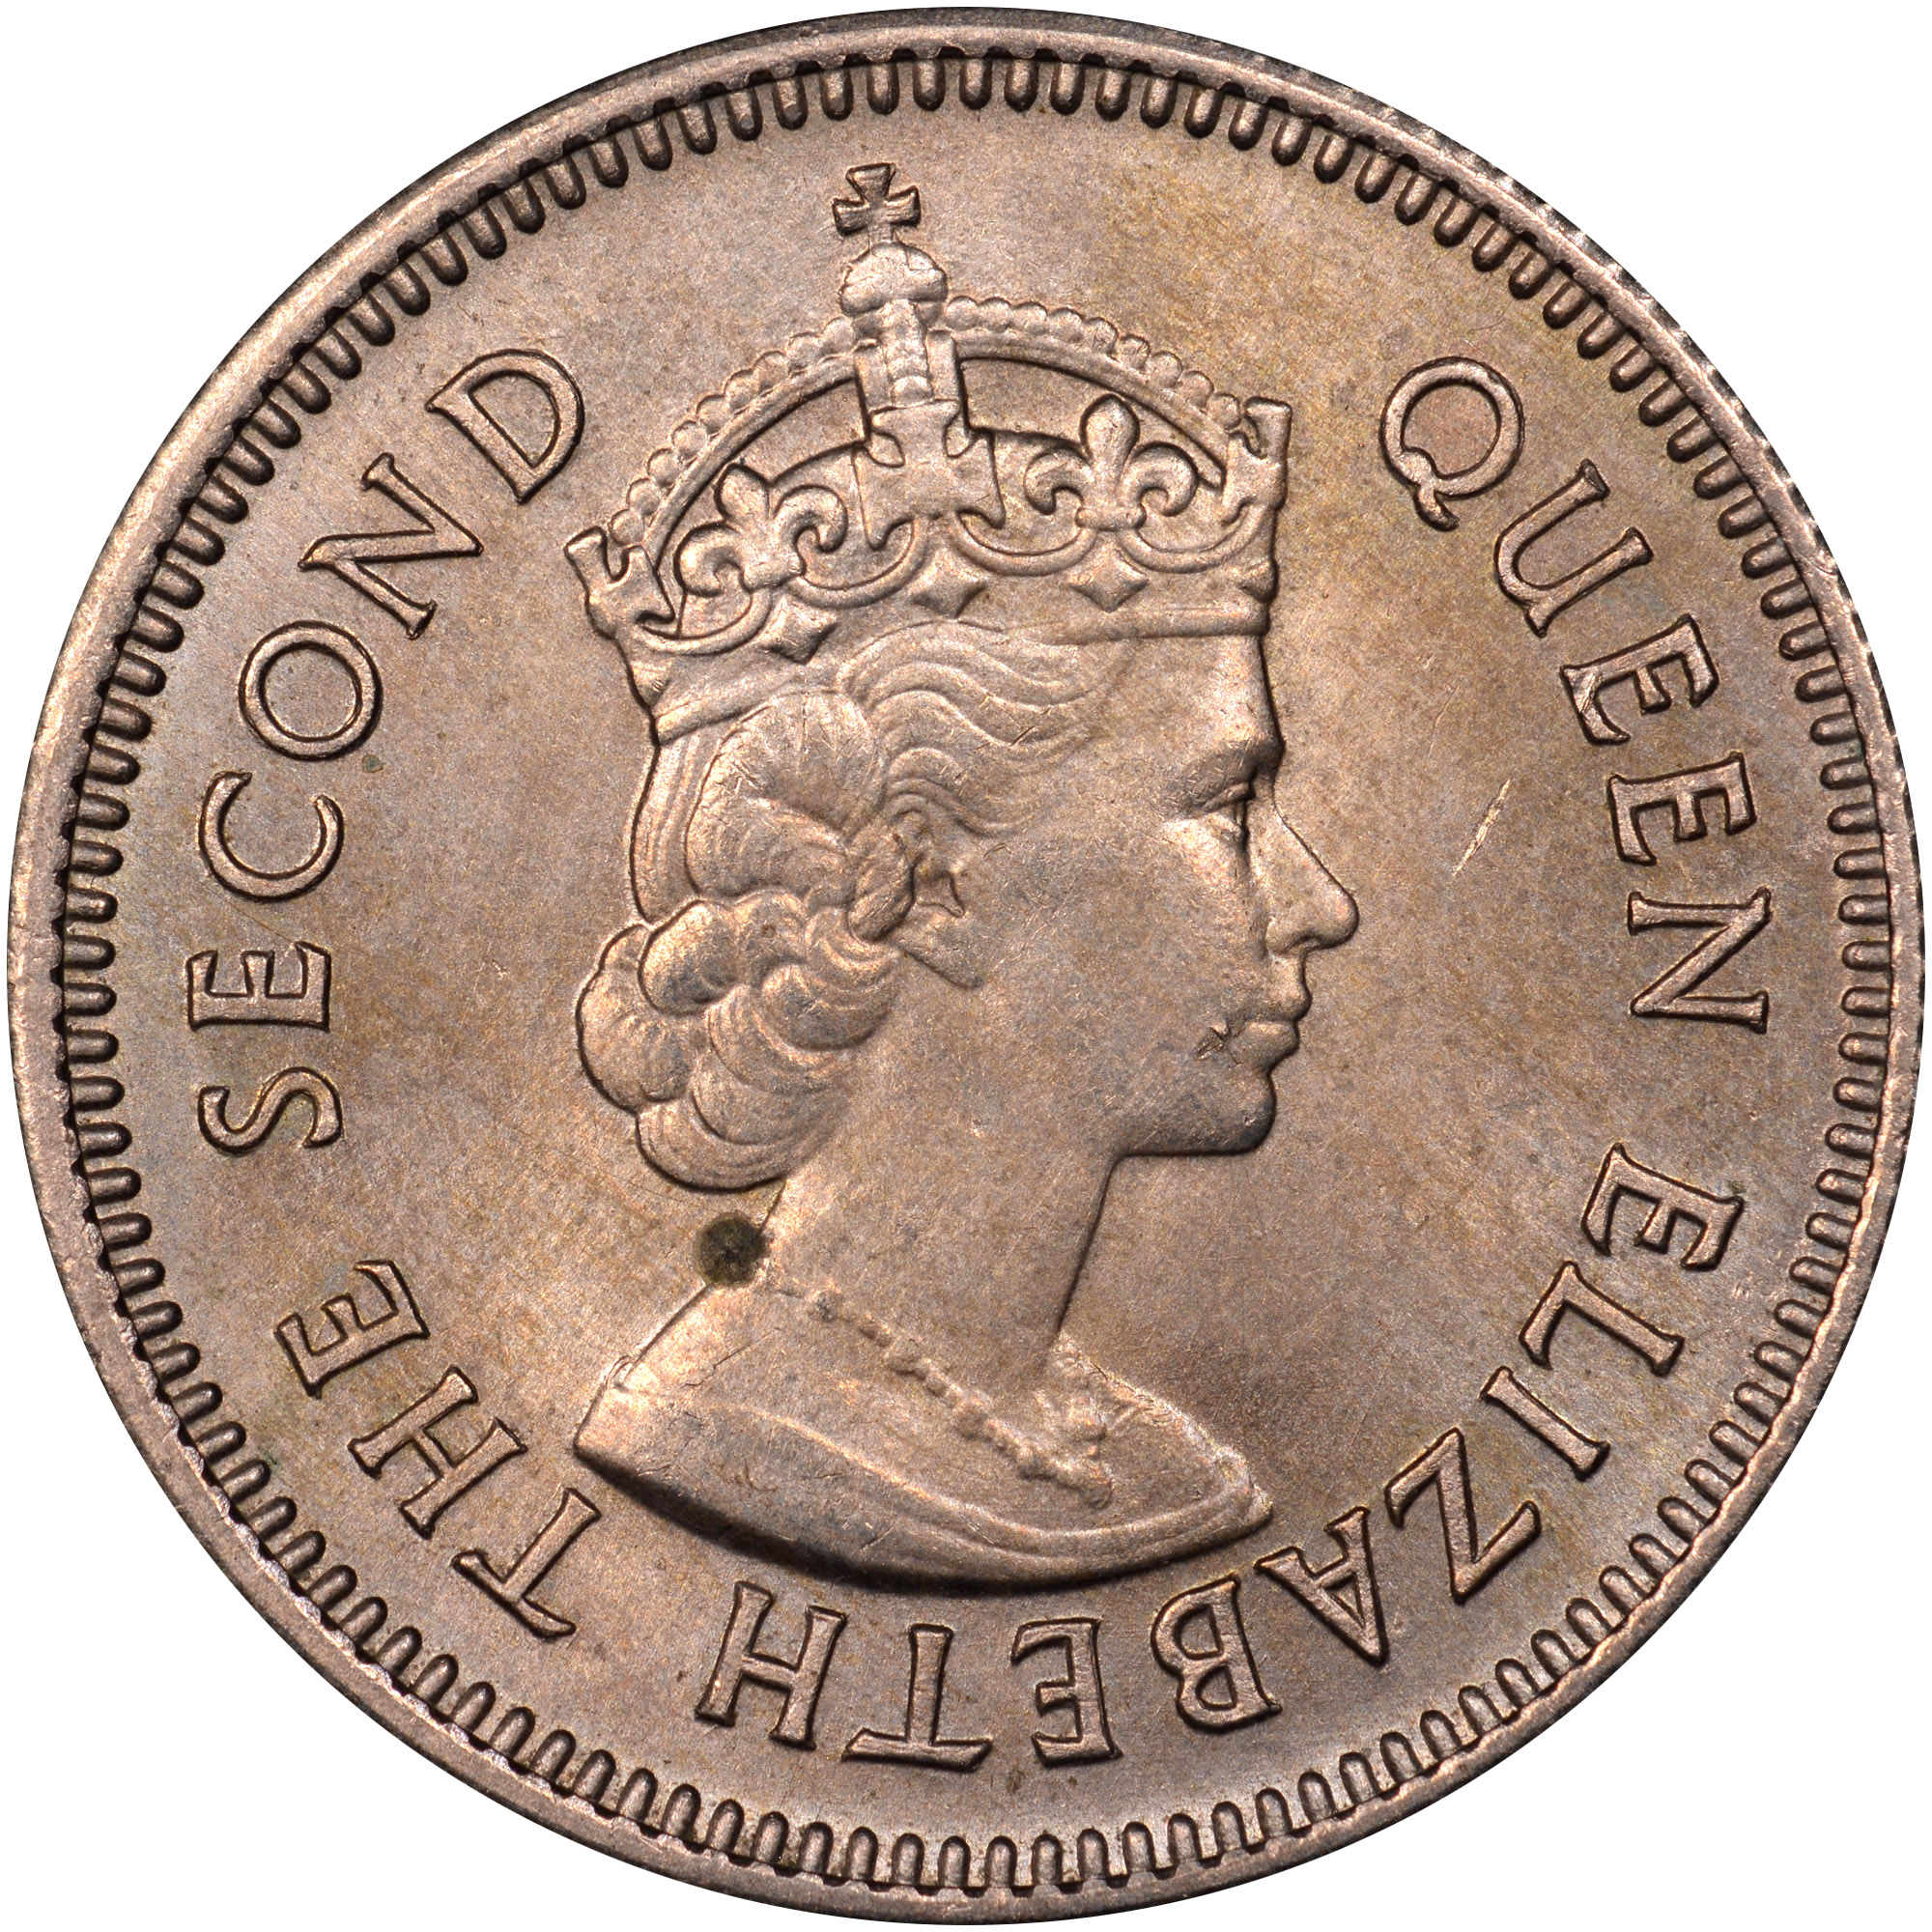 1956-1970 British Honduras 10 Cents obverse